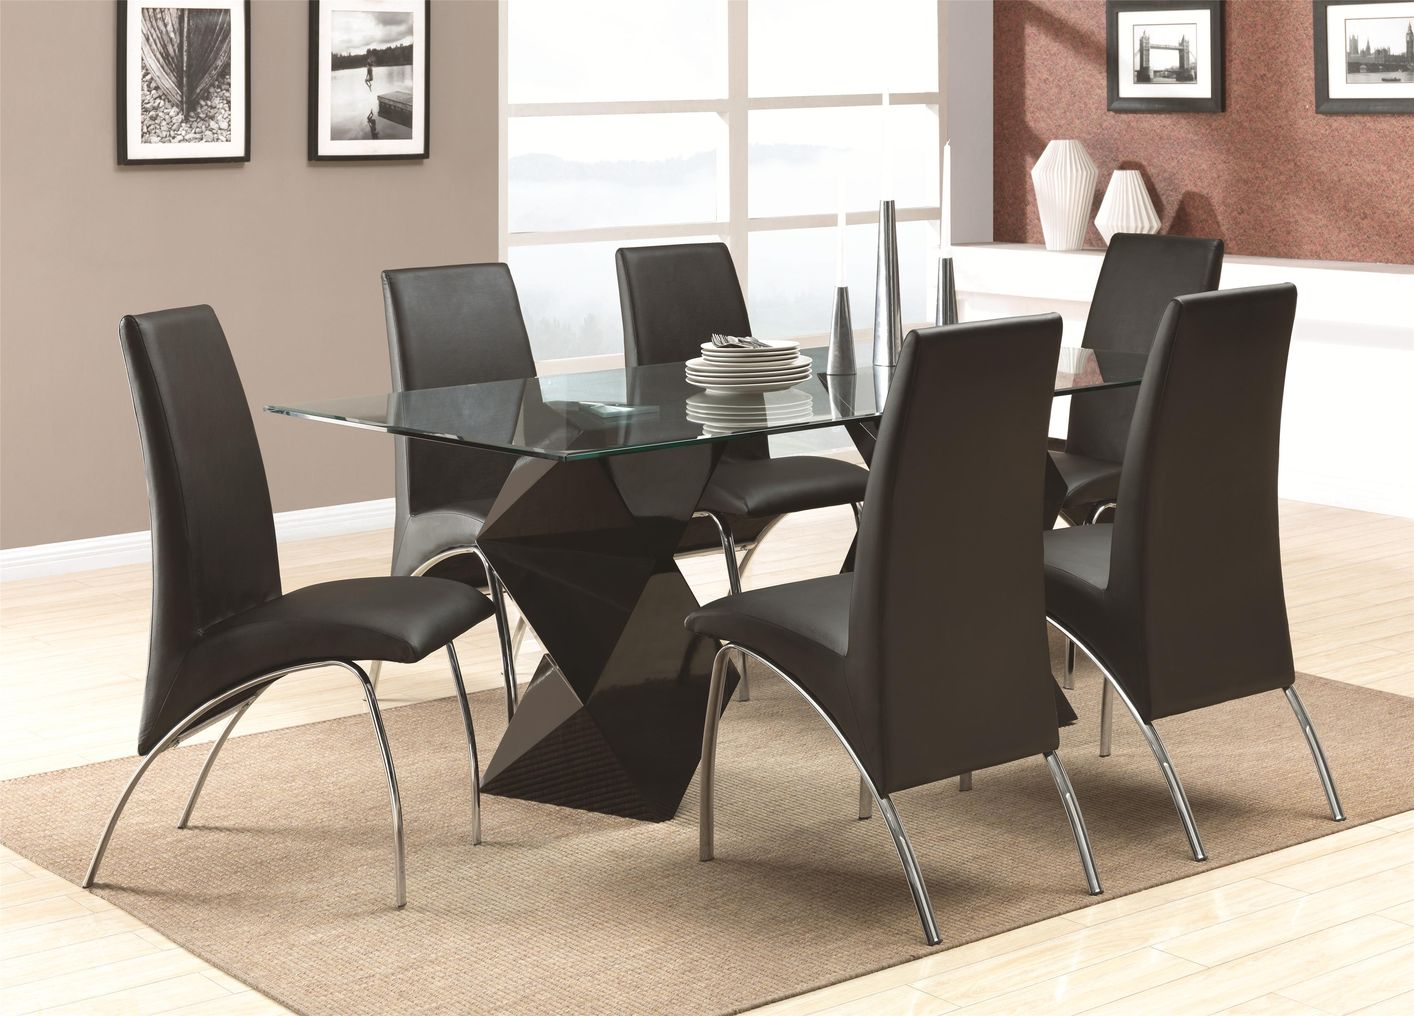 Black Metal Dining Chairs Black Metal Dining Chair Steal A Sofa Furniture Outlet